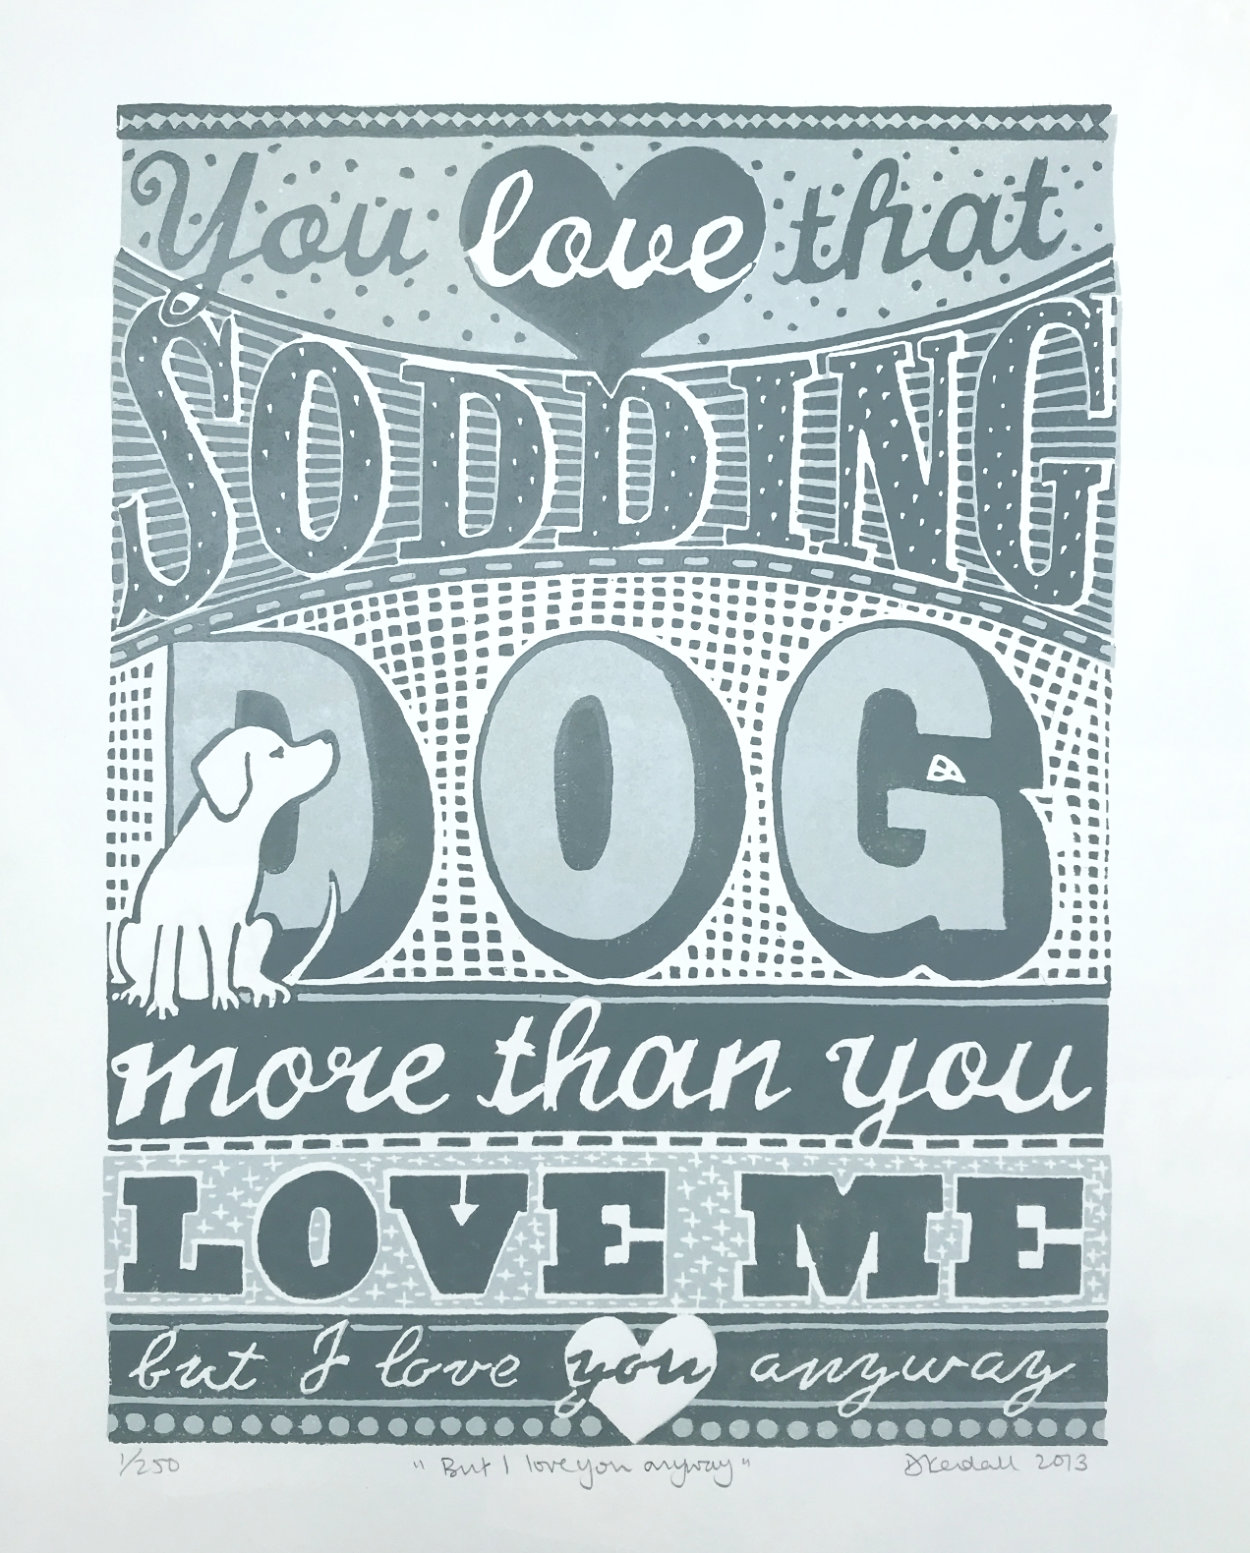 The Sodding Dog Limited Edition Linoprint | The Enlightened Hound